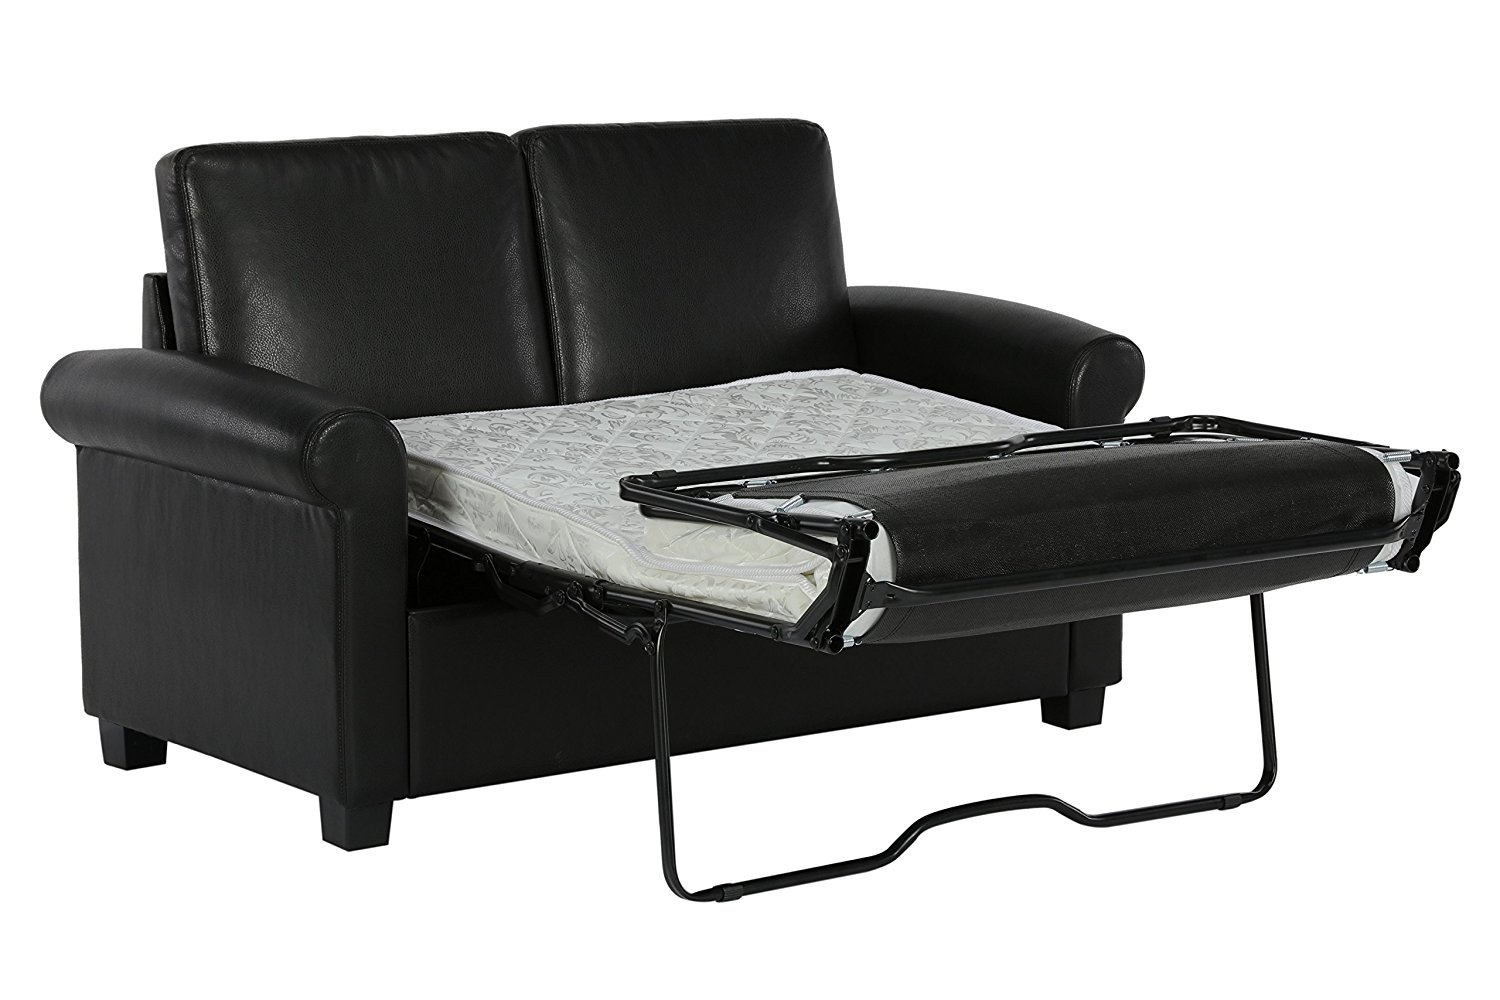 A Leather Sleeper Sofa Convenience Comfort And Class